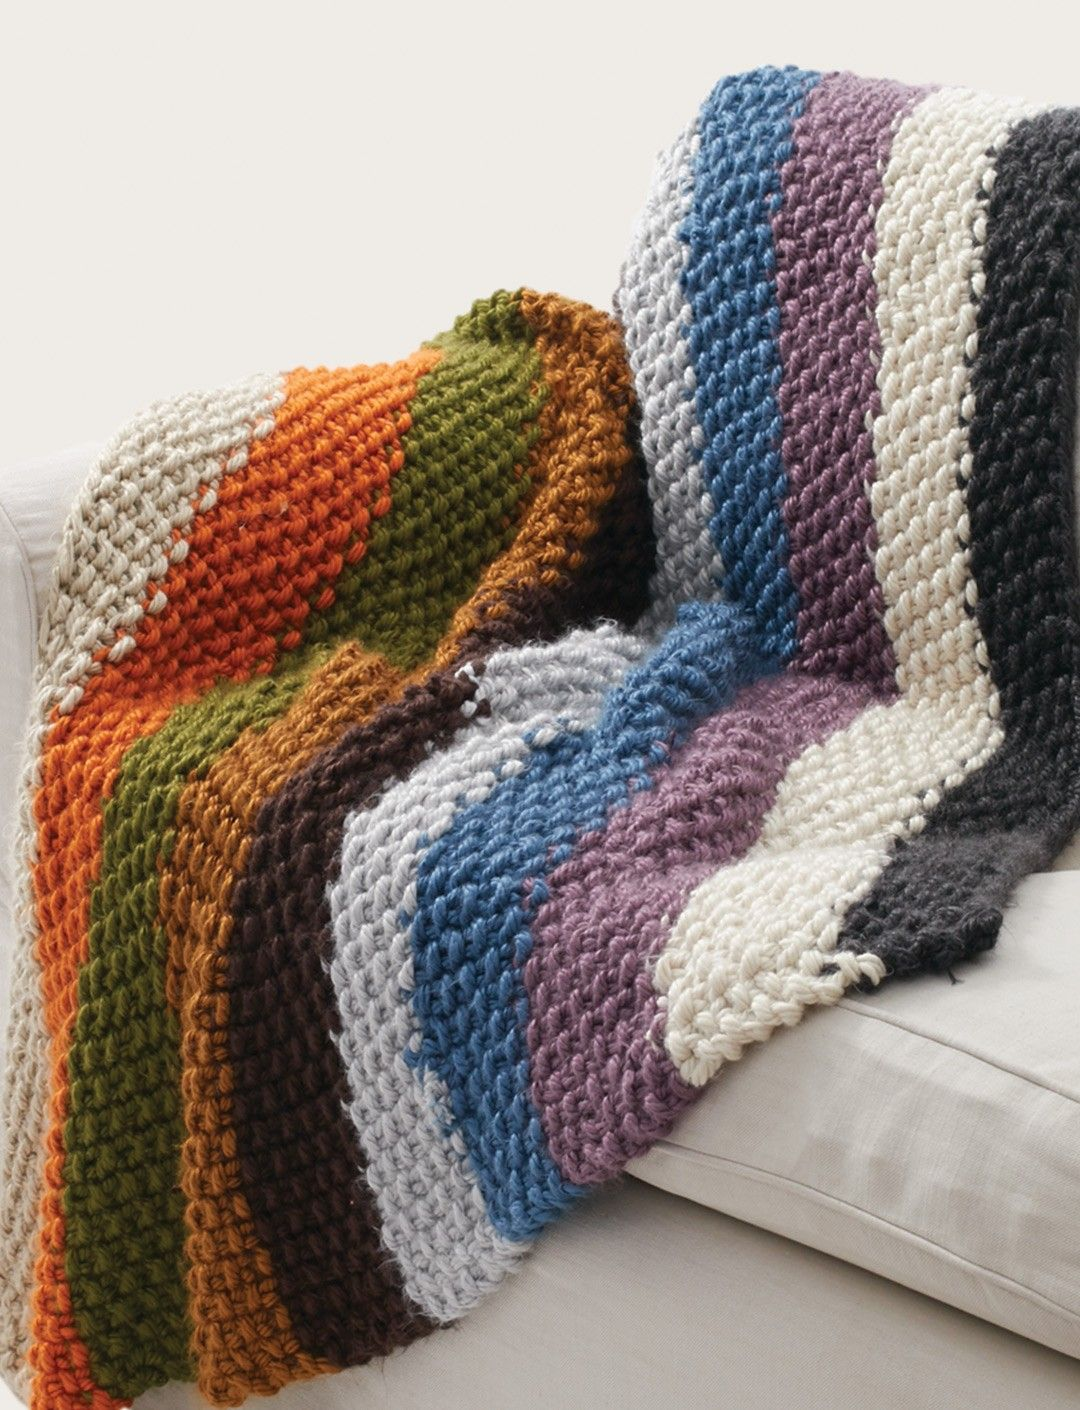 Knitting Blankets : Bernat seed stitch blanket cozy chunky rainbow striped